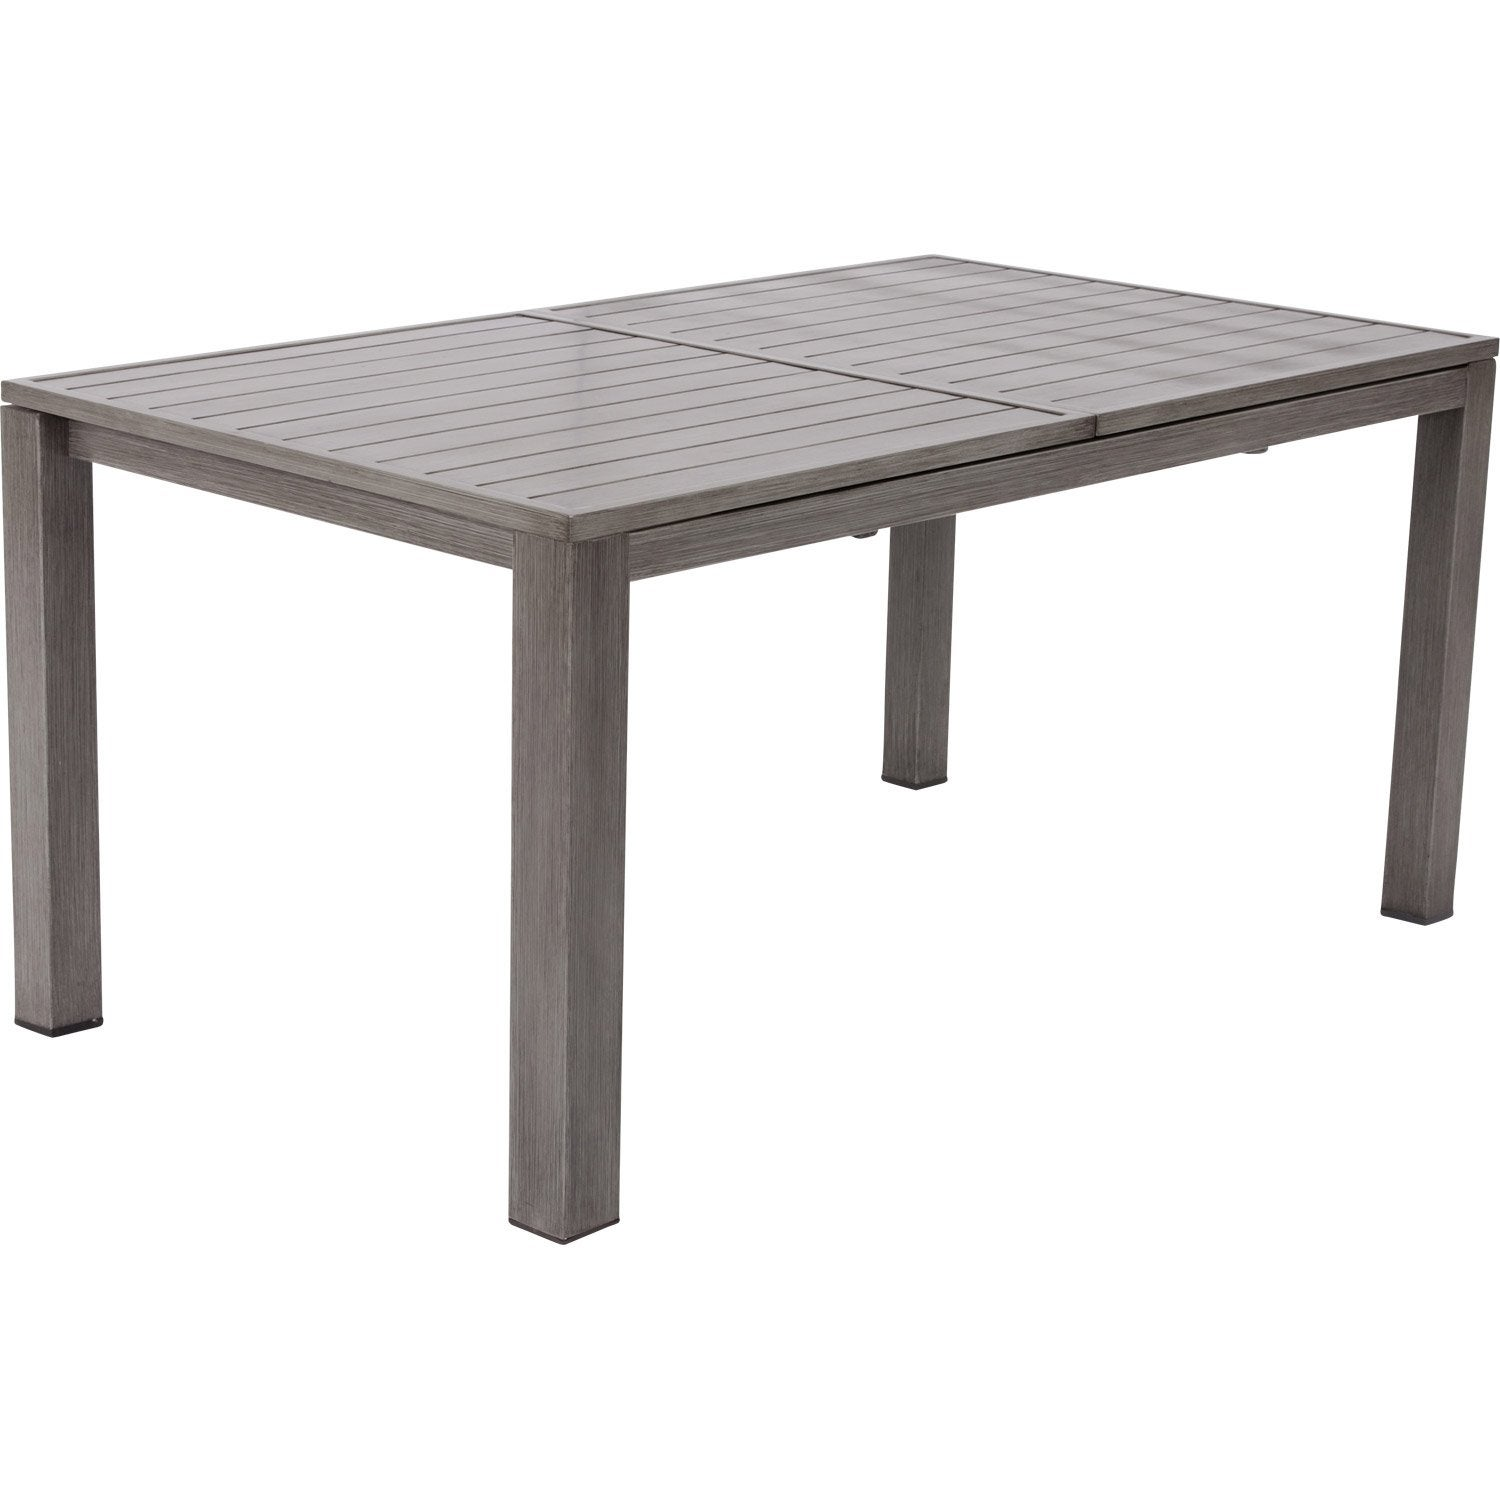 Table de jardin naterial antibes rectangulaire gris look - Table bois de jardin ...